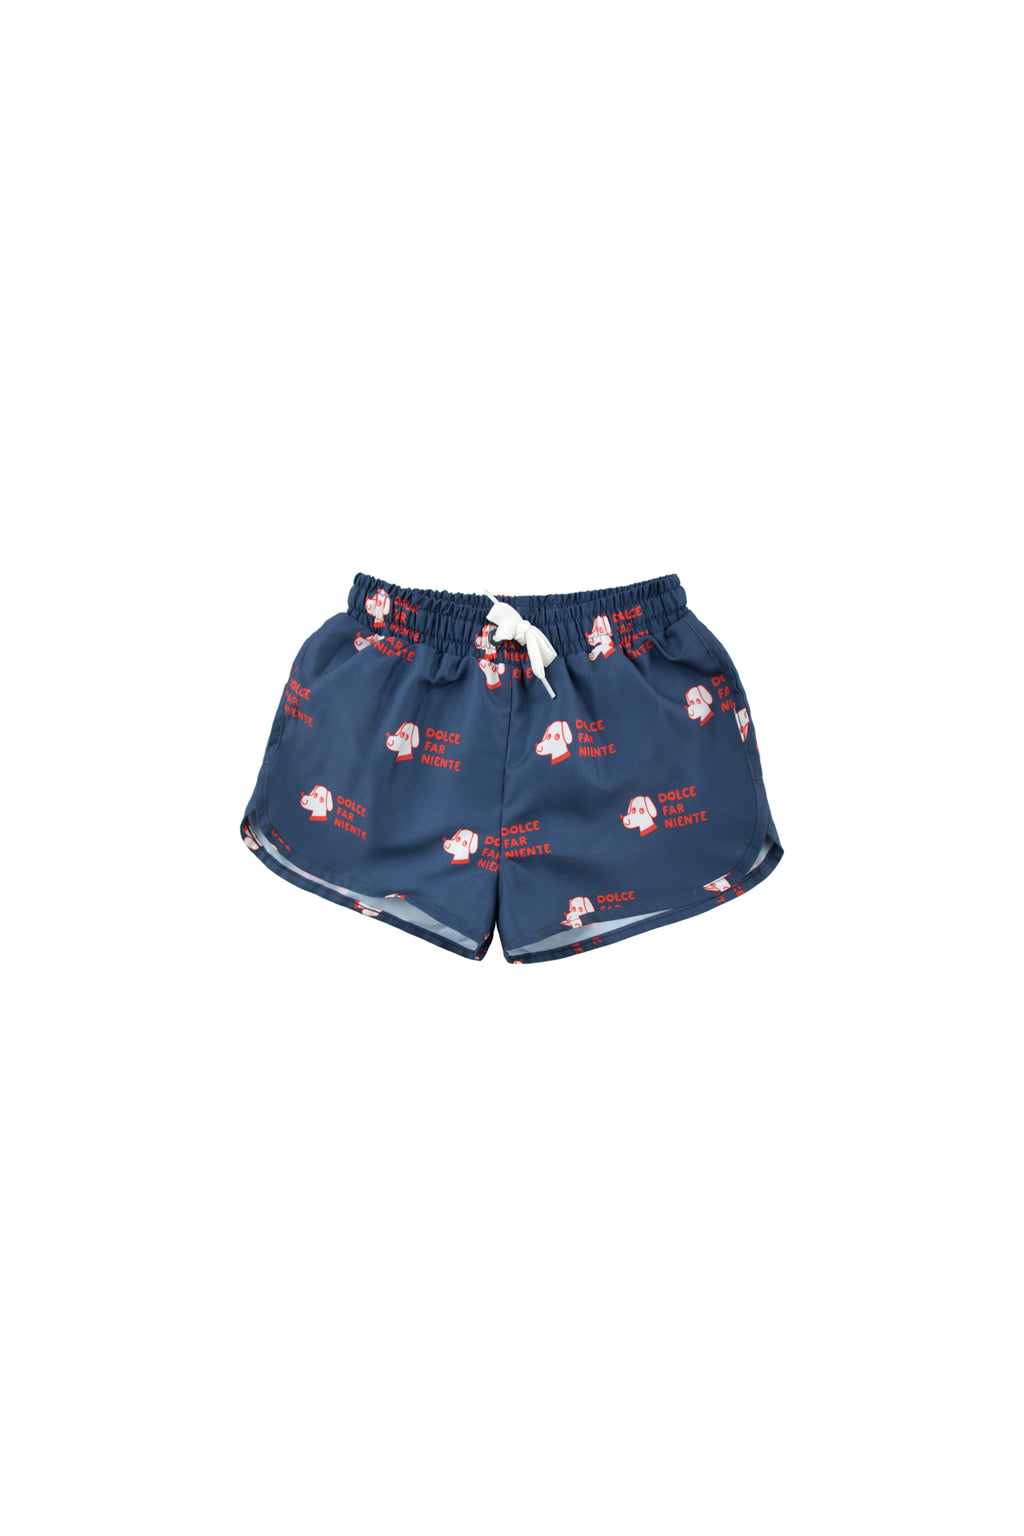 Tiny Cottons Dogs Trunks - Navy/Red